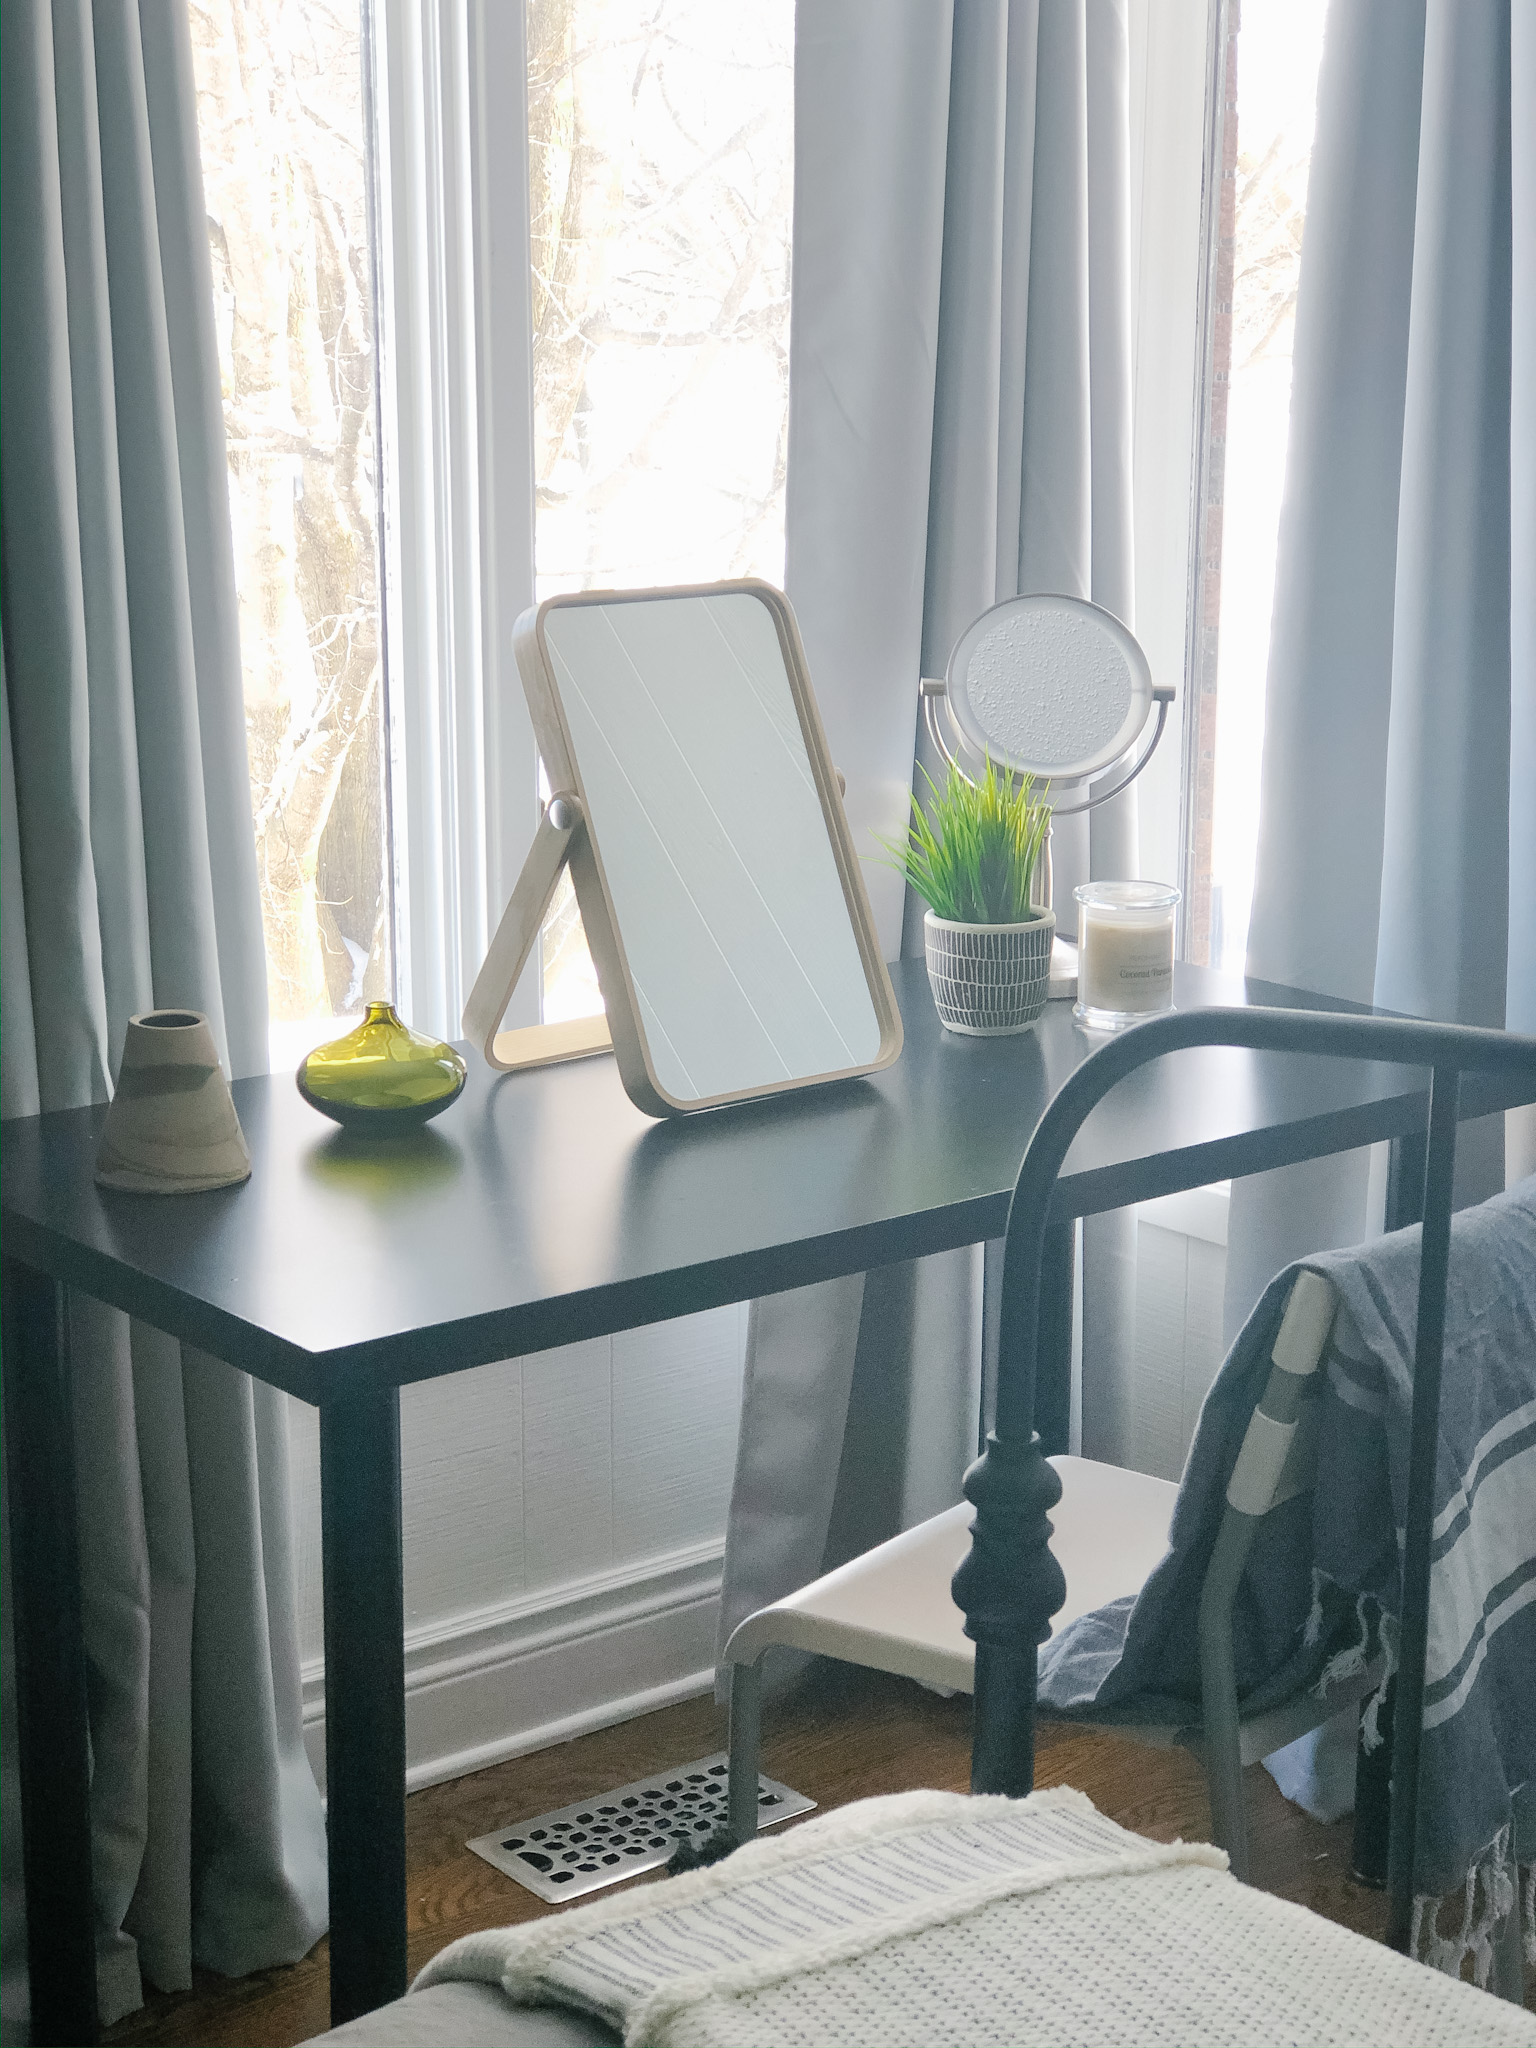 These inexpensive black-out drapes will darken the room when necessary but they pull back far enough to let the light in.